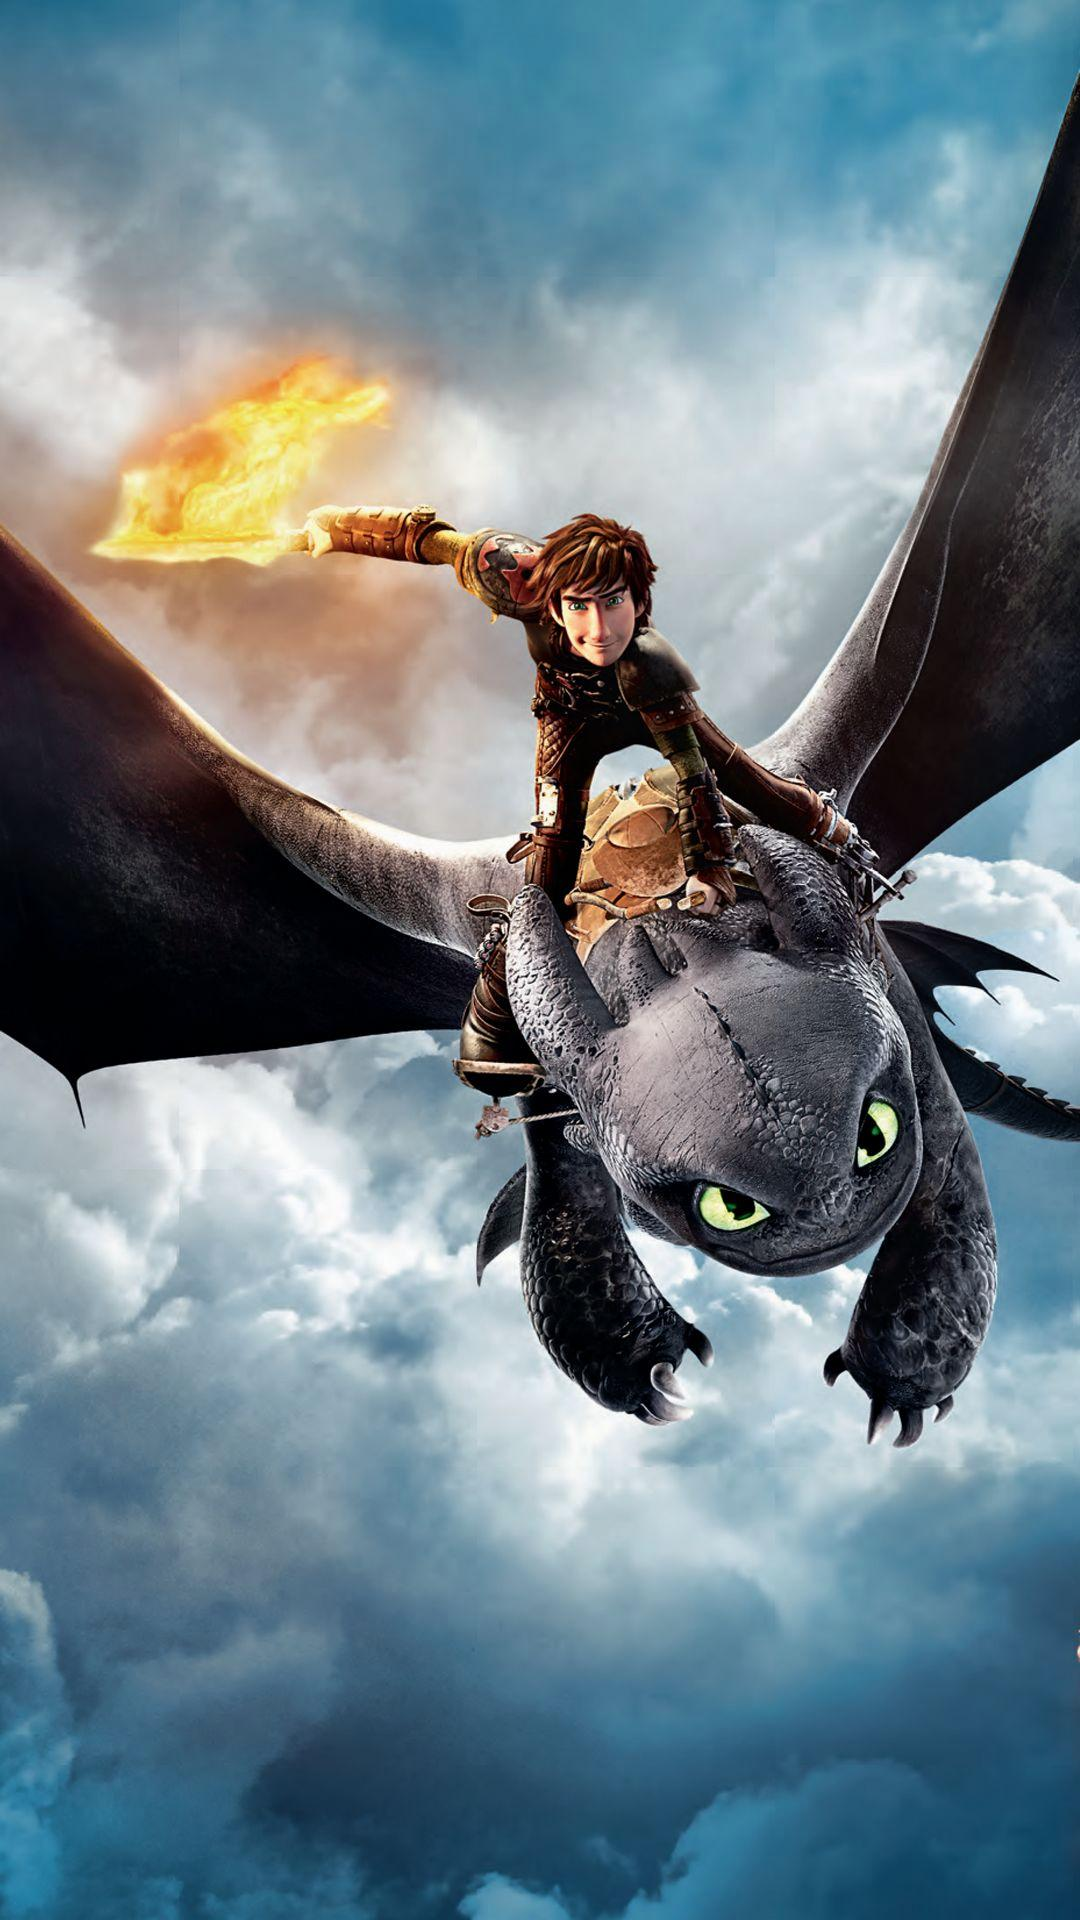 3d how to train your dragon wallpaper background supportive guru - Dragon wallpaper 3d ...